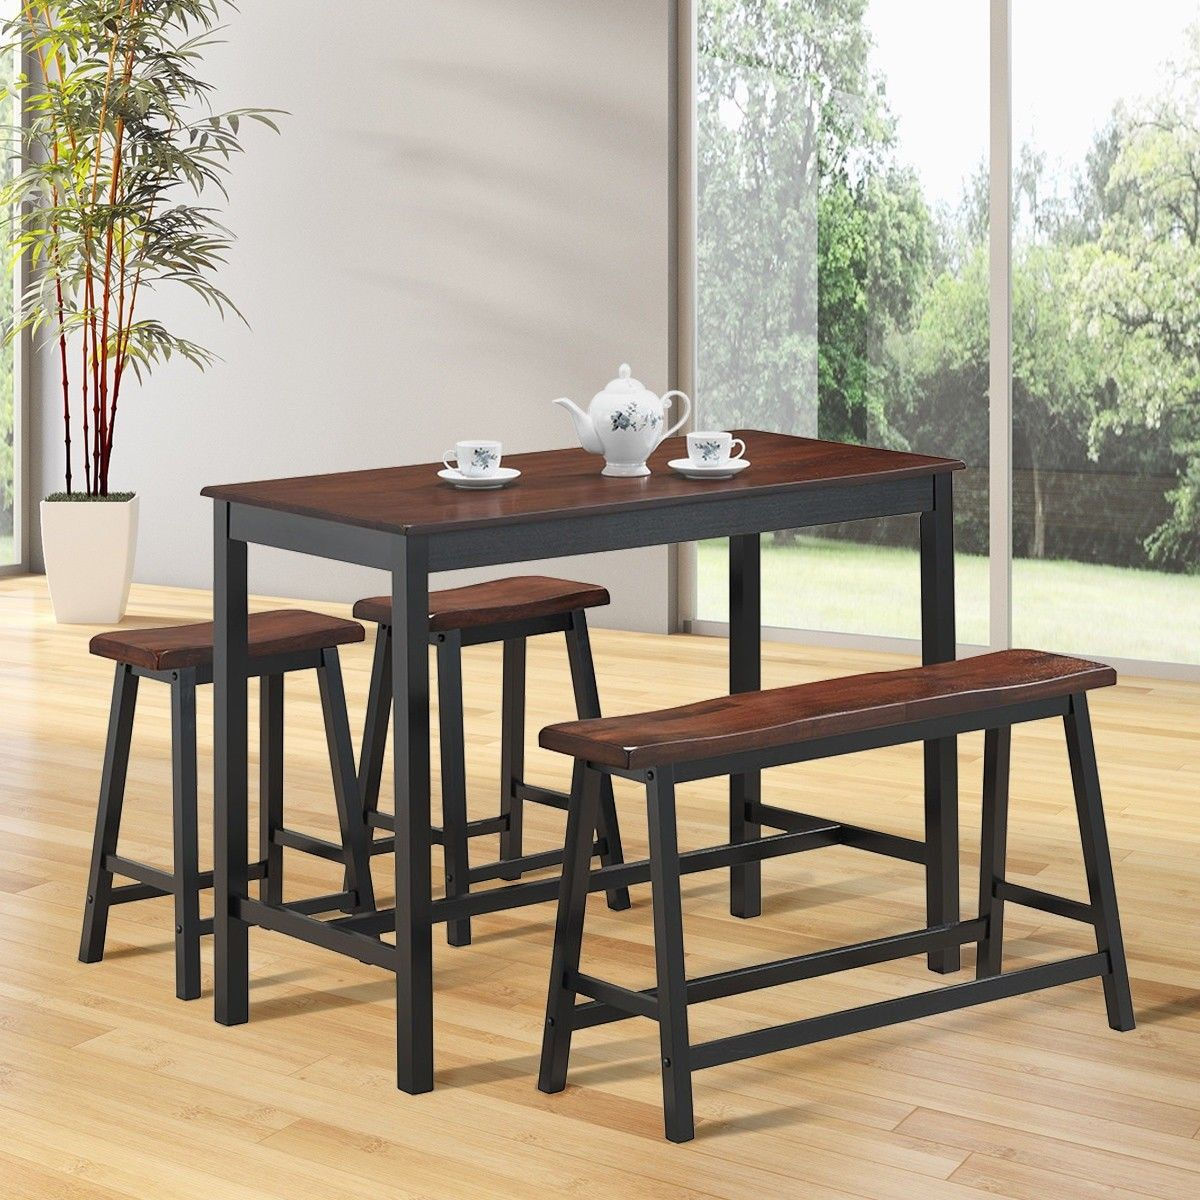 4 Pcs Solid Wood Counter Height Dining Table Set Wooden Dining